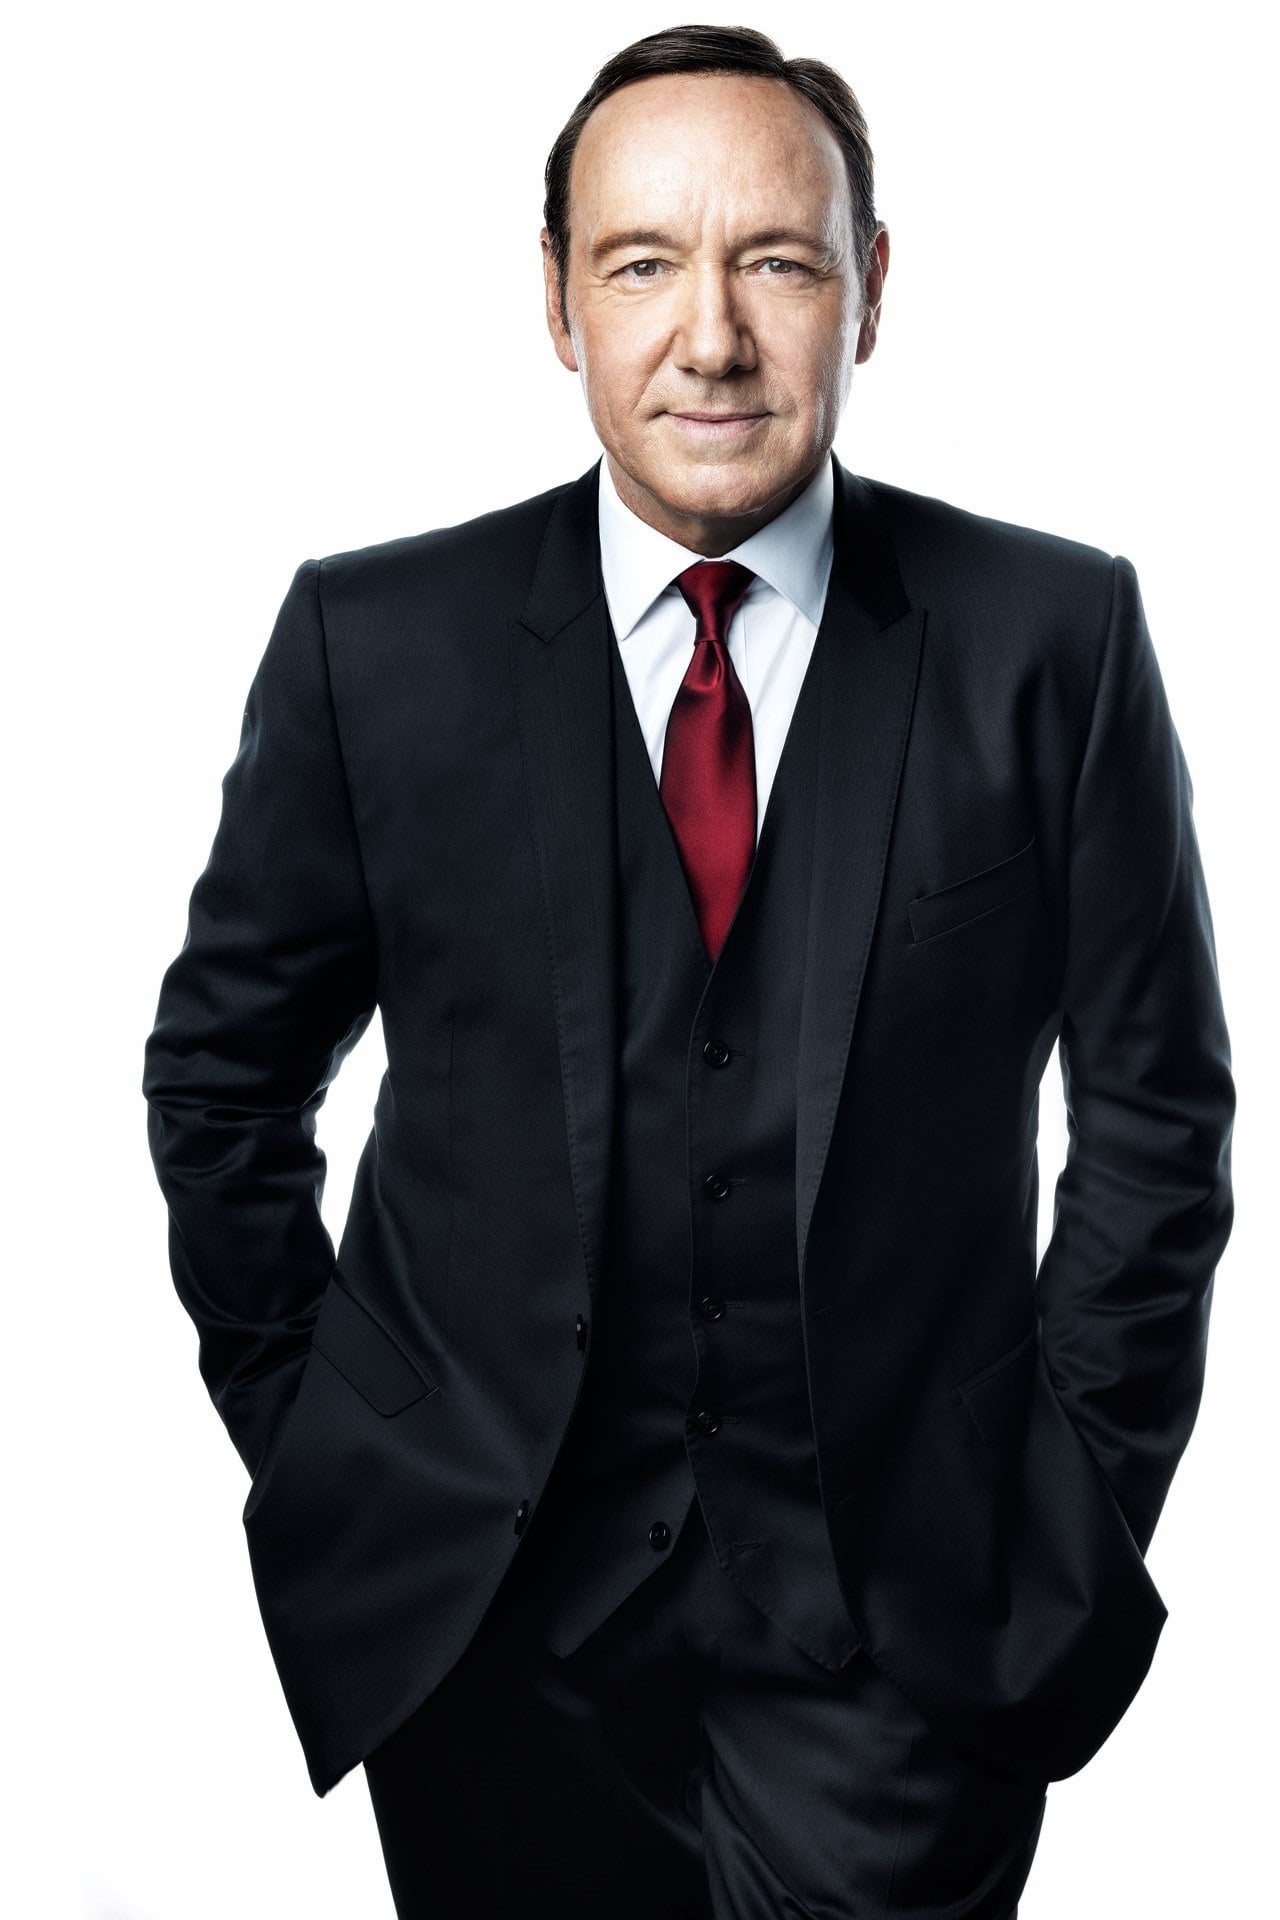 Kevin Spacey Full hd wallpapers